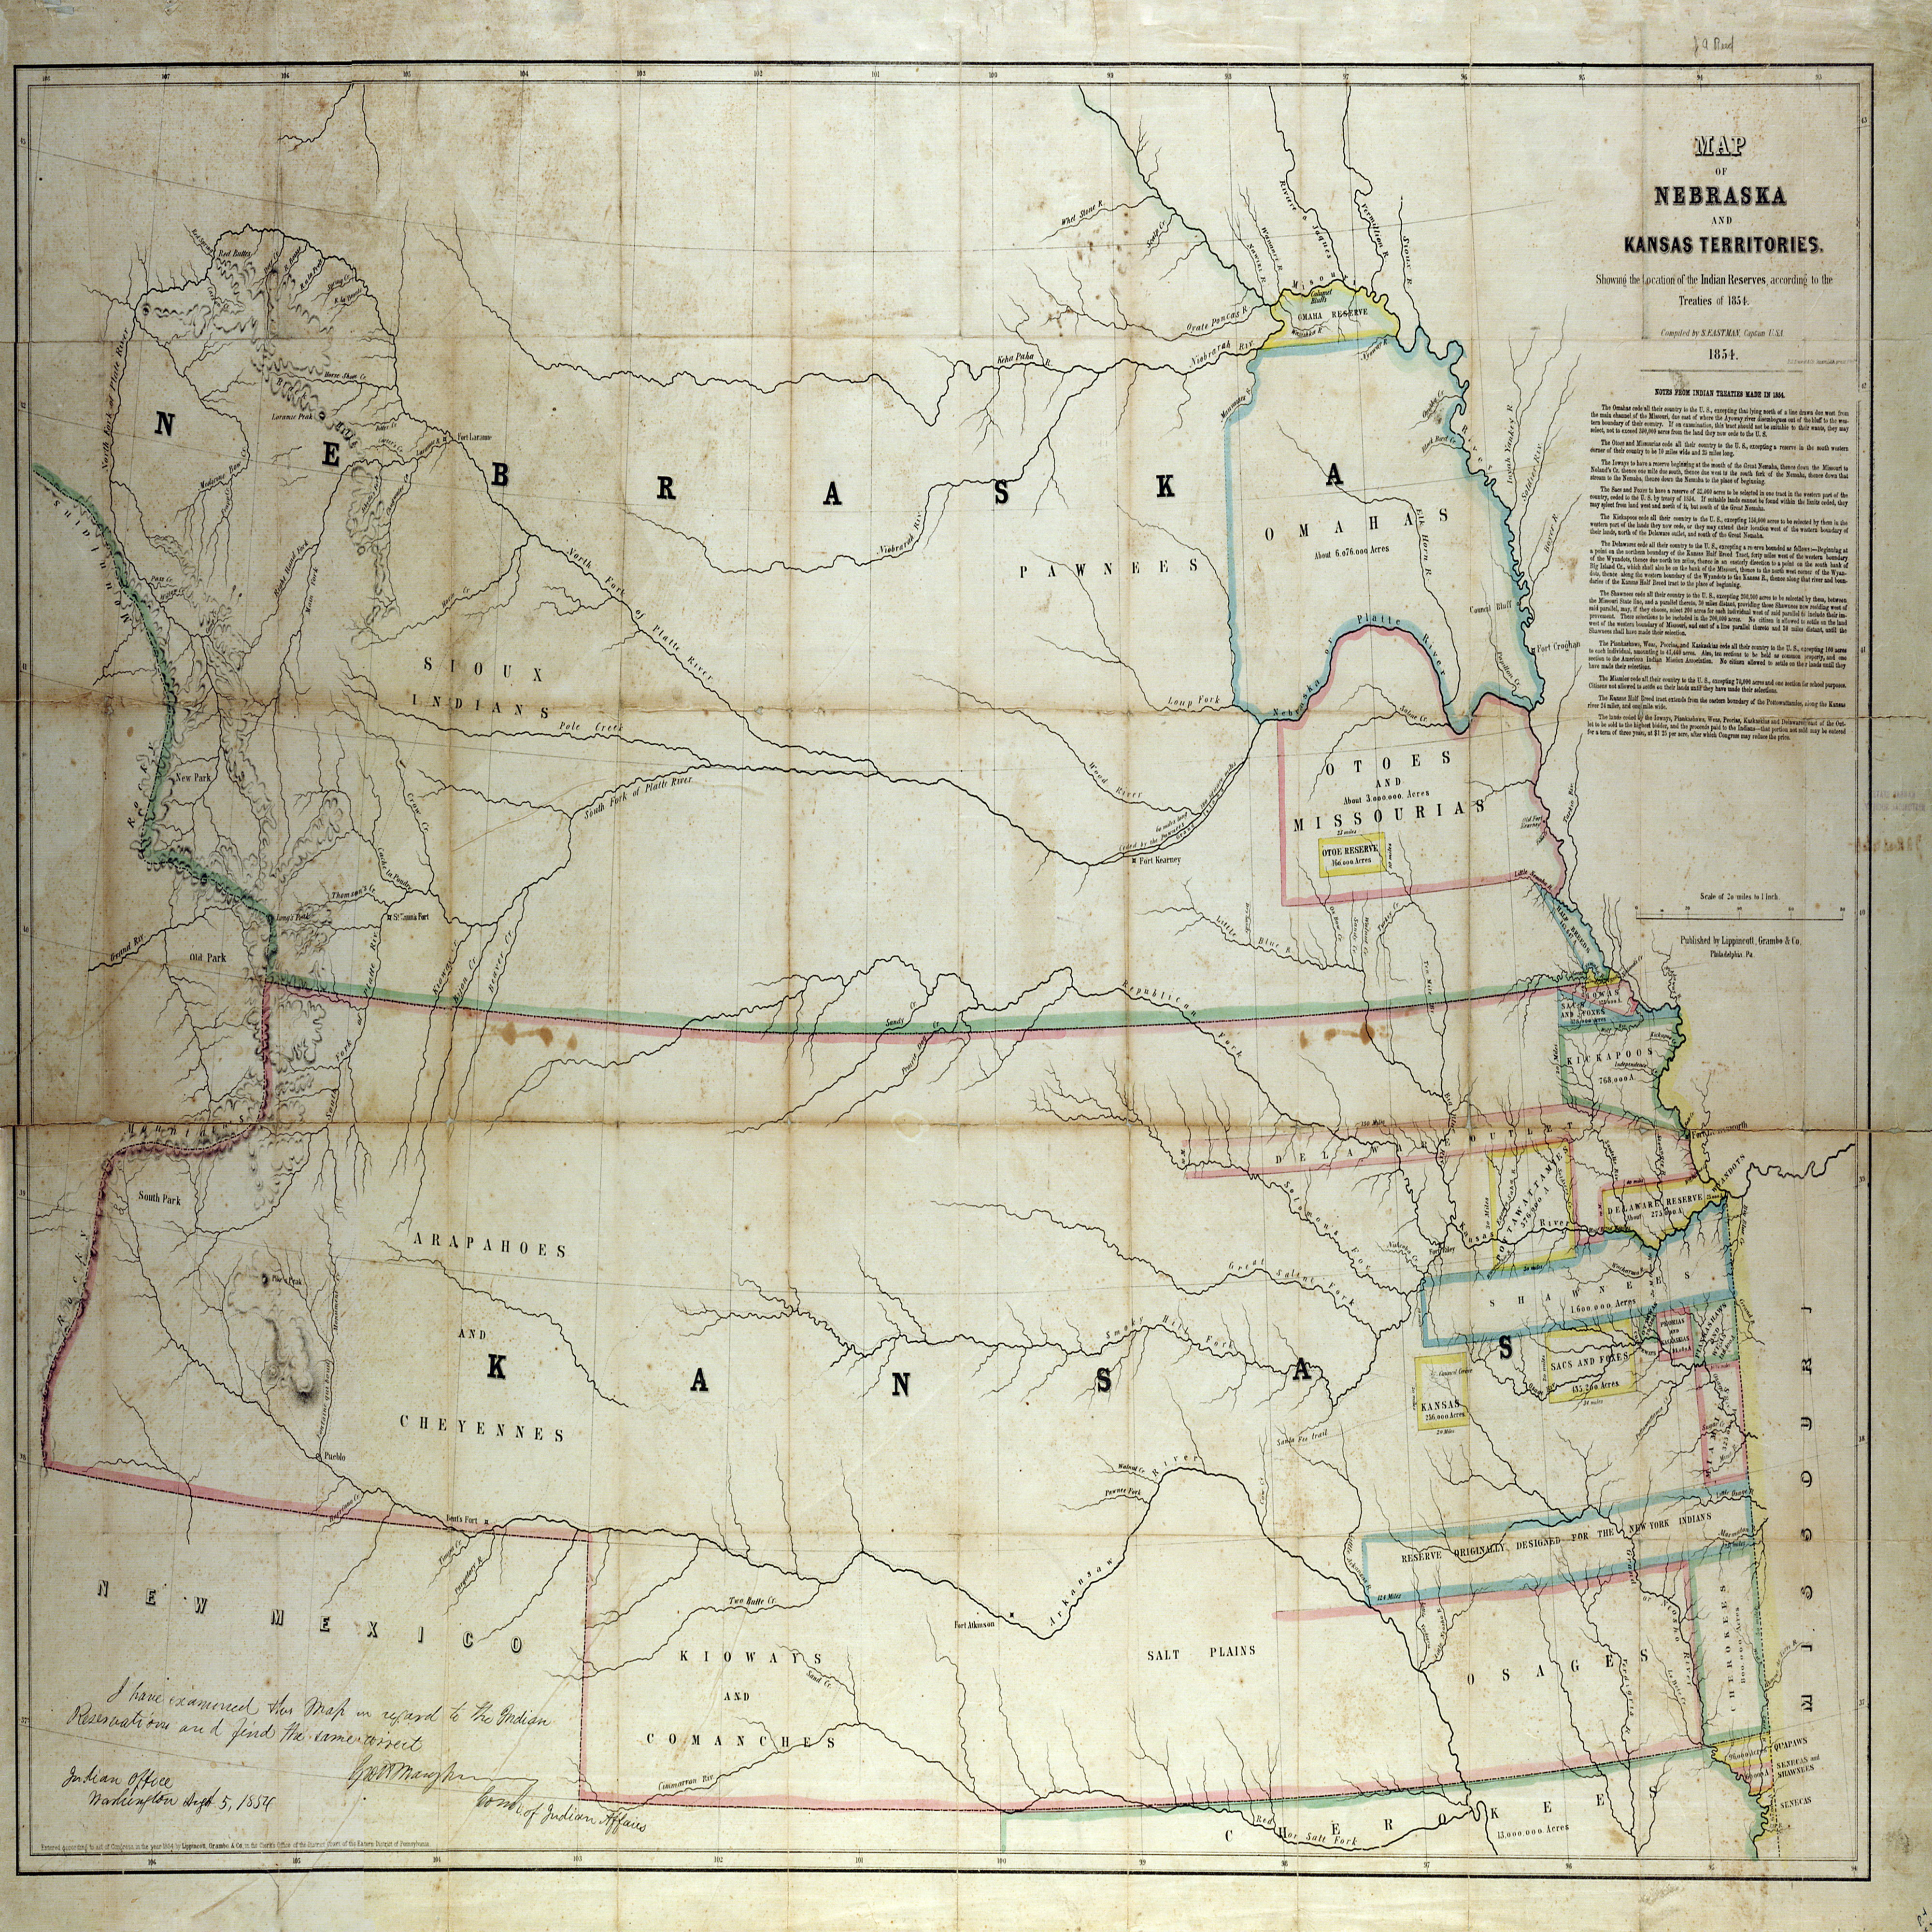 Eastman's map of Kansas and Nebraska territories showing the location of the Indian reserves according to the treaties of 1854